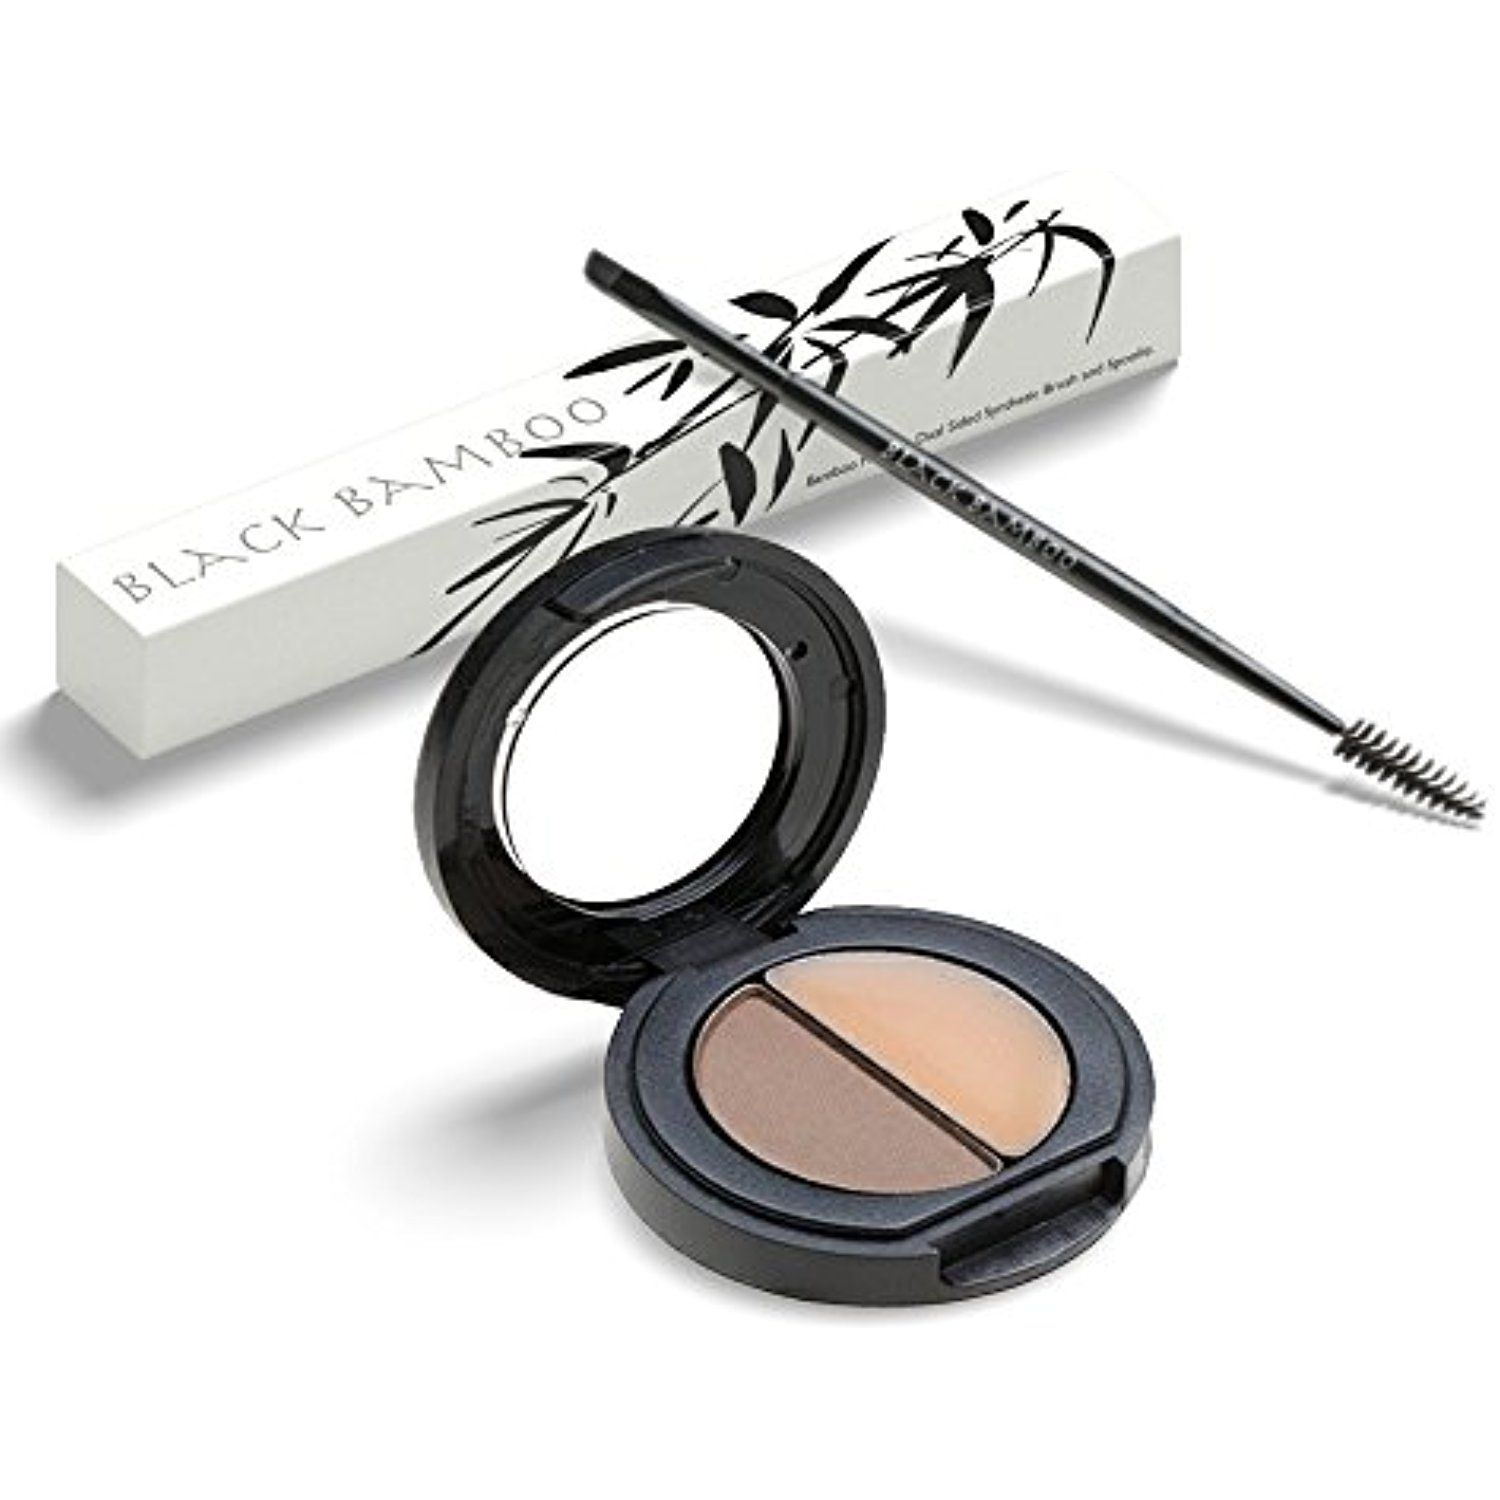 Highest Rated Eyebrow Makeup Kit For Beautiful Women With Dual Brush